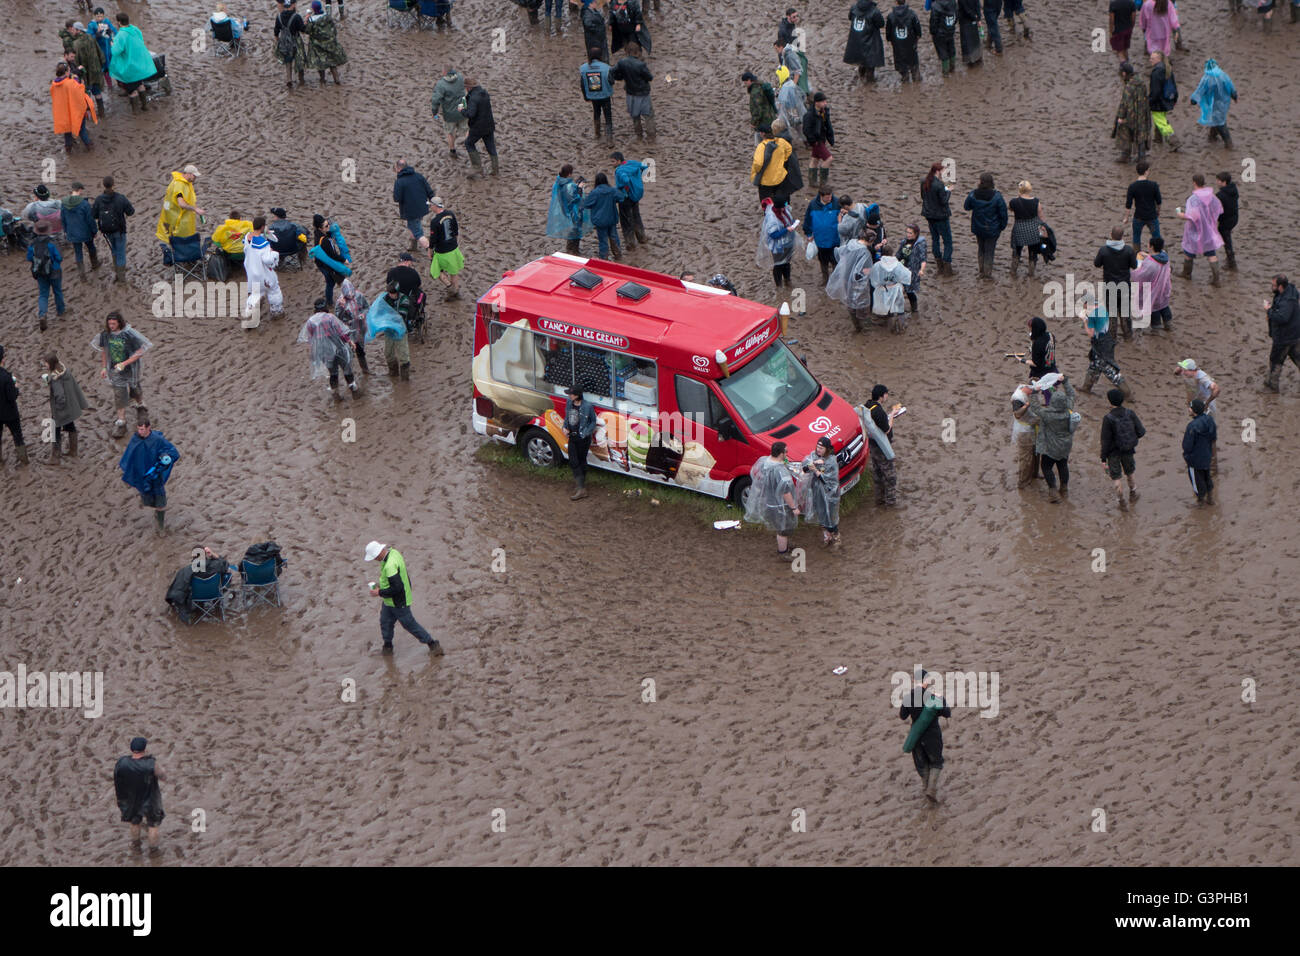 Download Festival Stock Photos & Download Festival Stock Images - Alamy